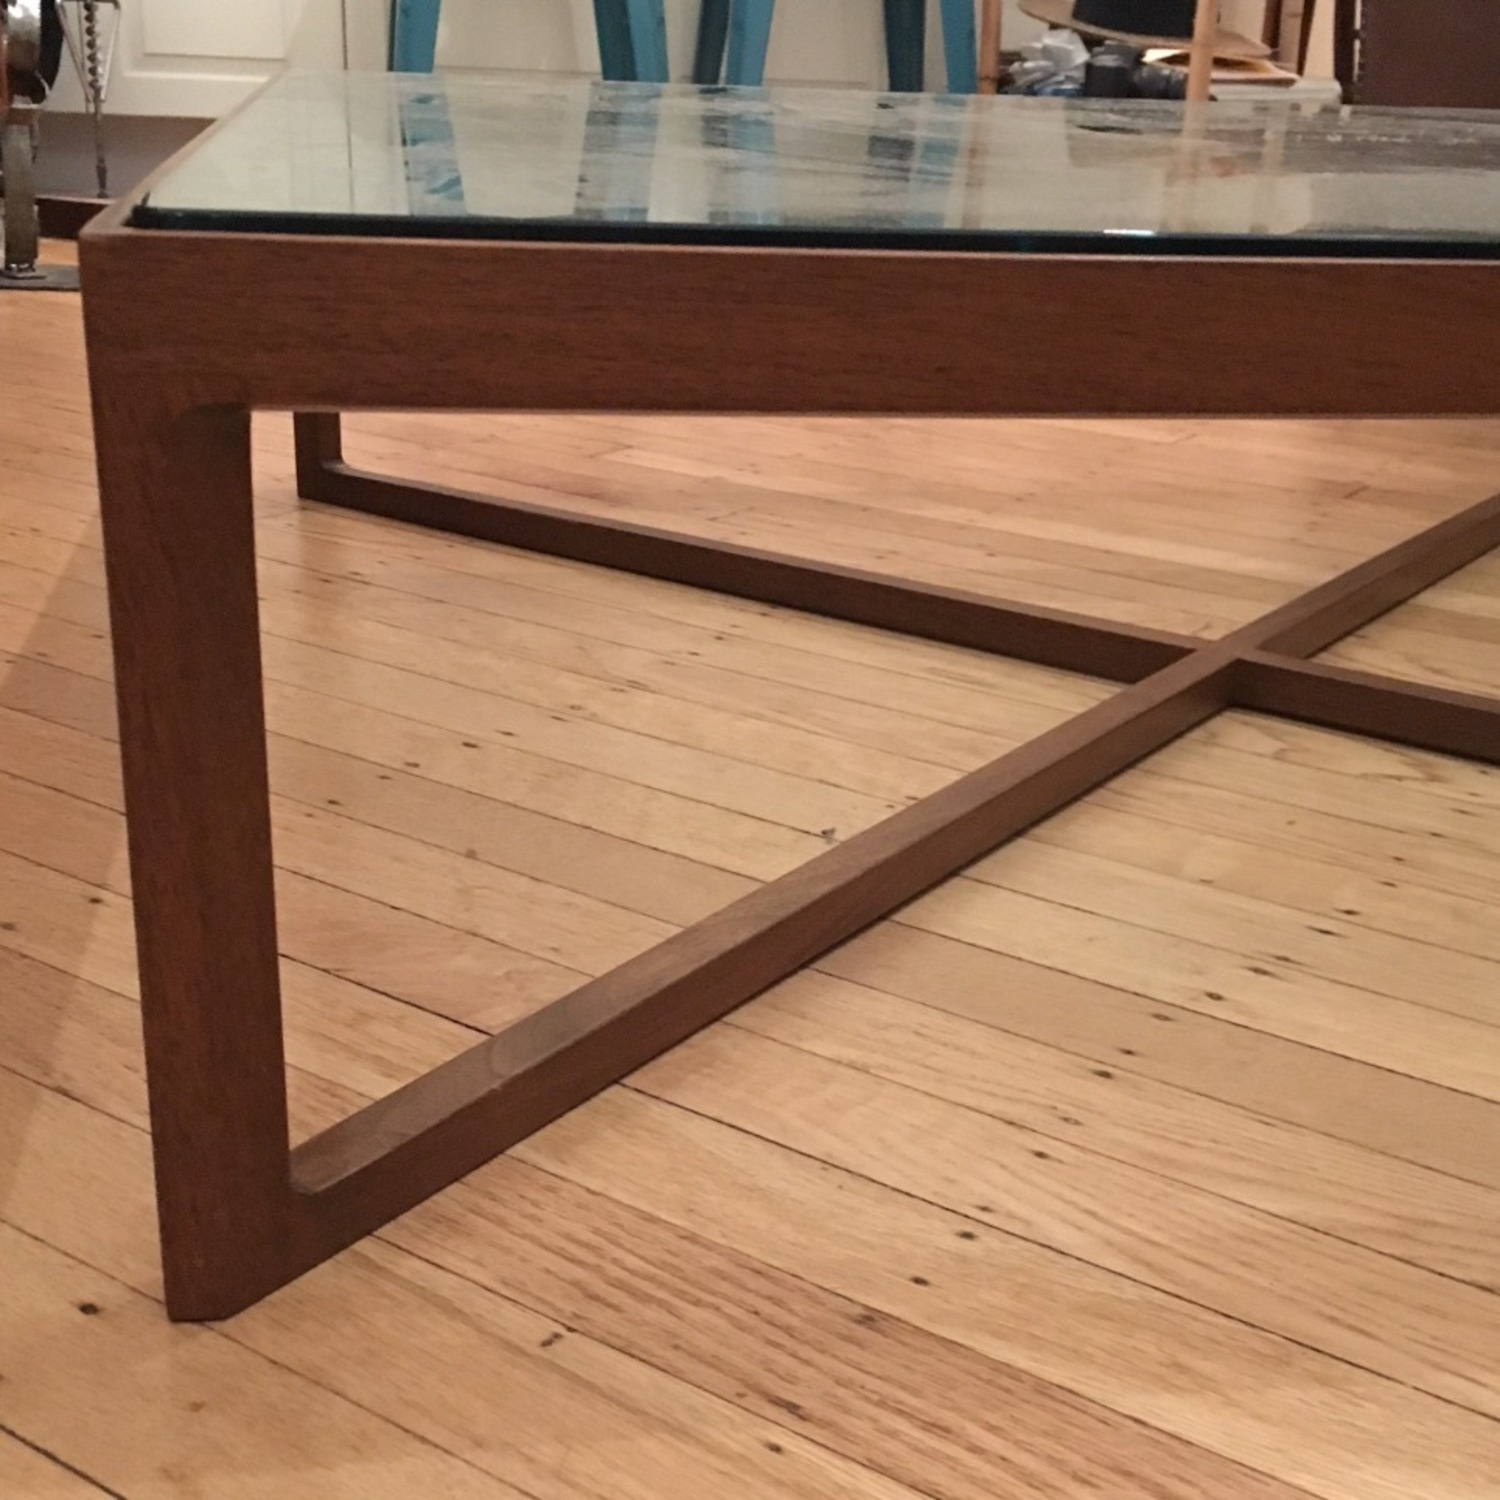 Design Within Reach Designer 4 KNOLL Coffee Table - image-2